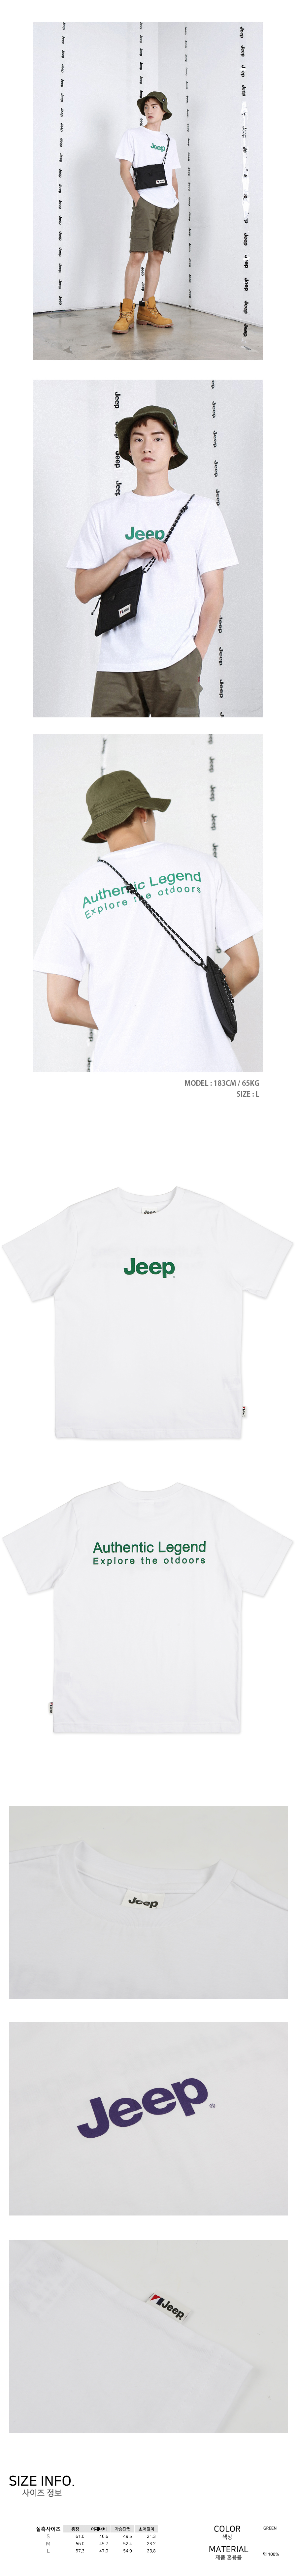 지프(JEEP) Color Logo (GK5TSU157GN)